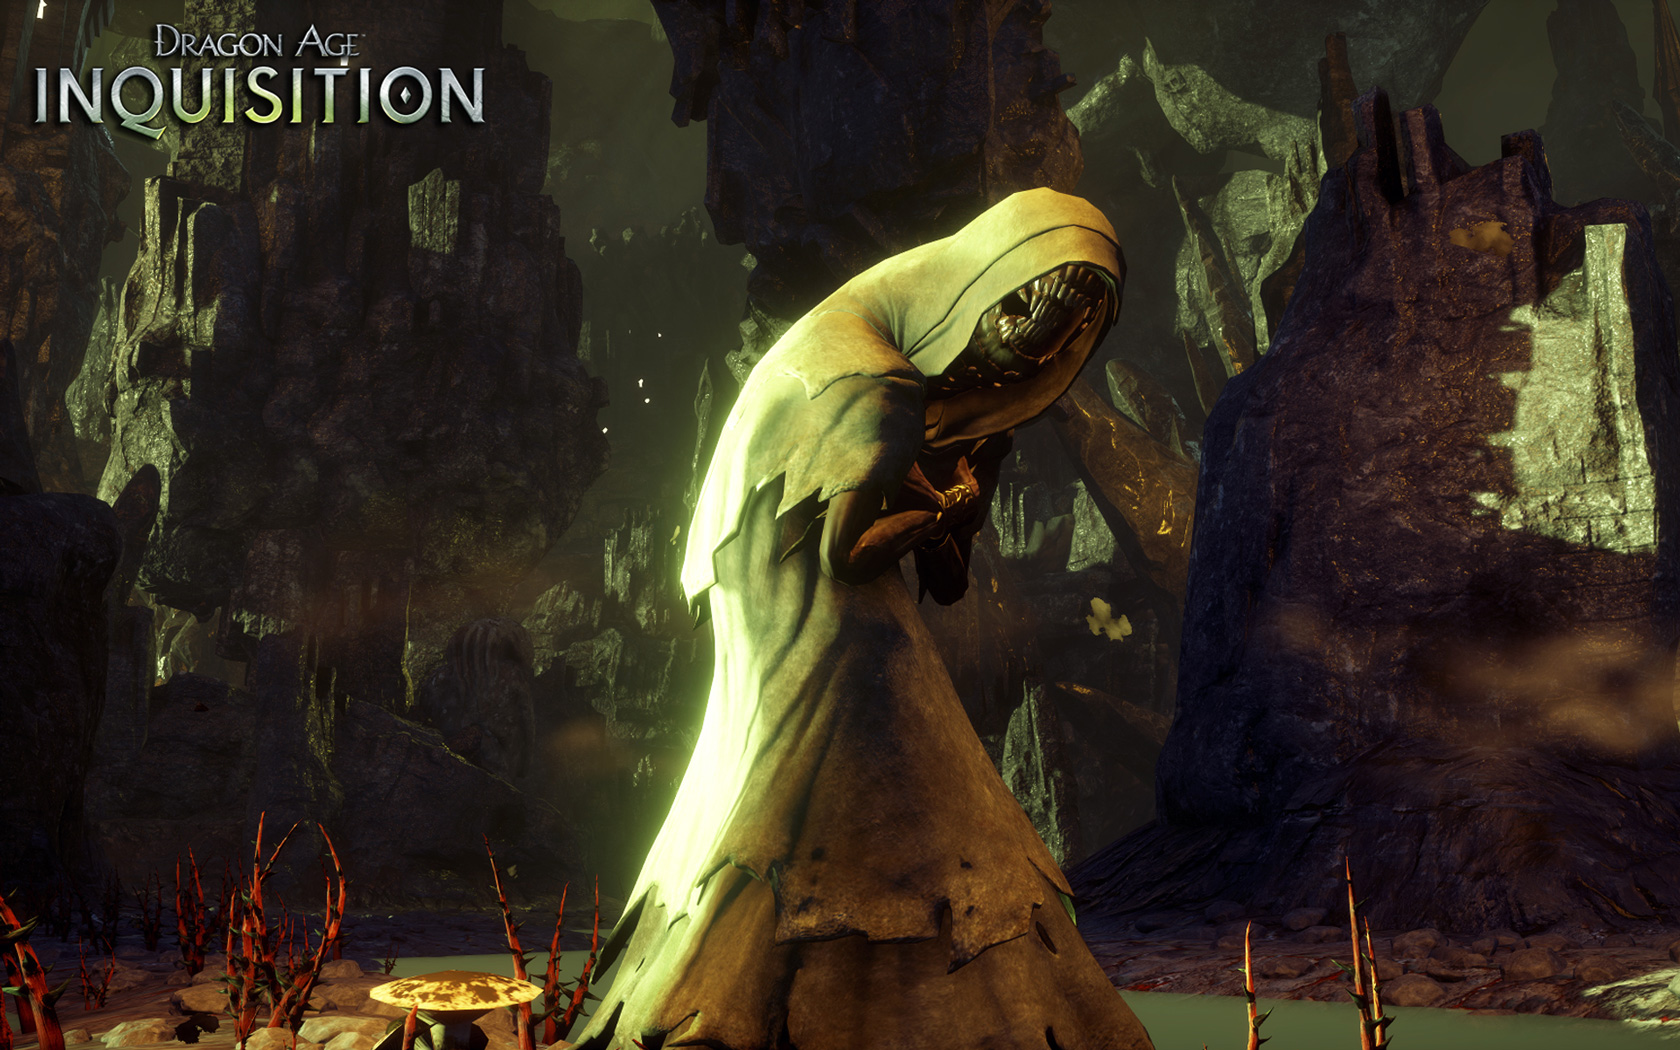 Free Dragon Age: Inquisition Wallpaper in 1680x1050